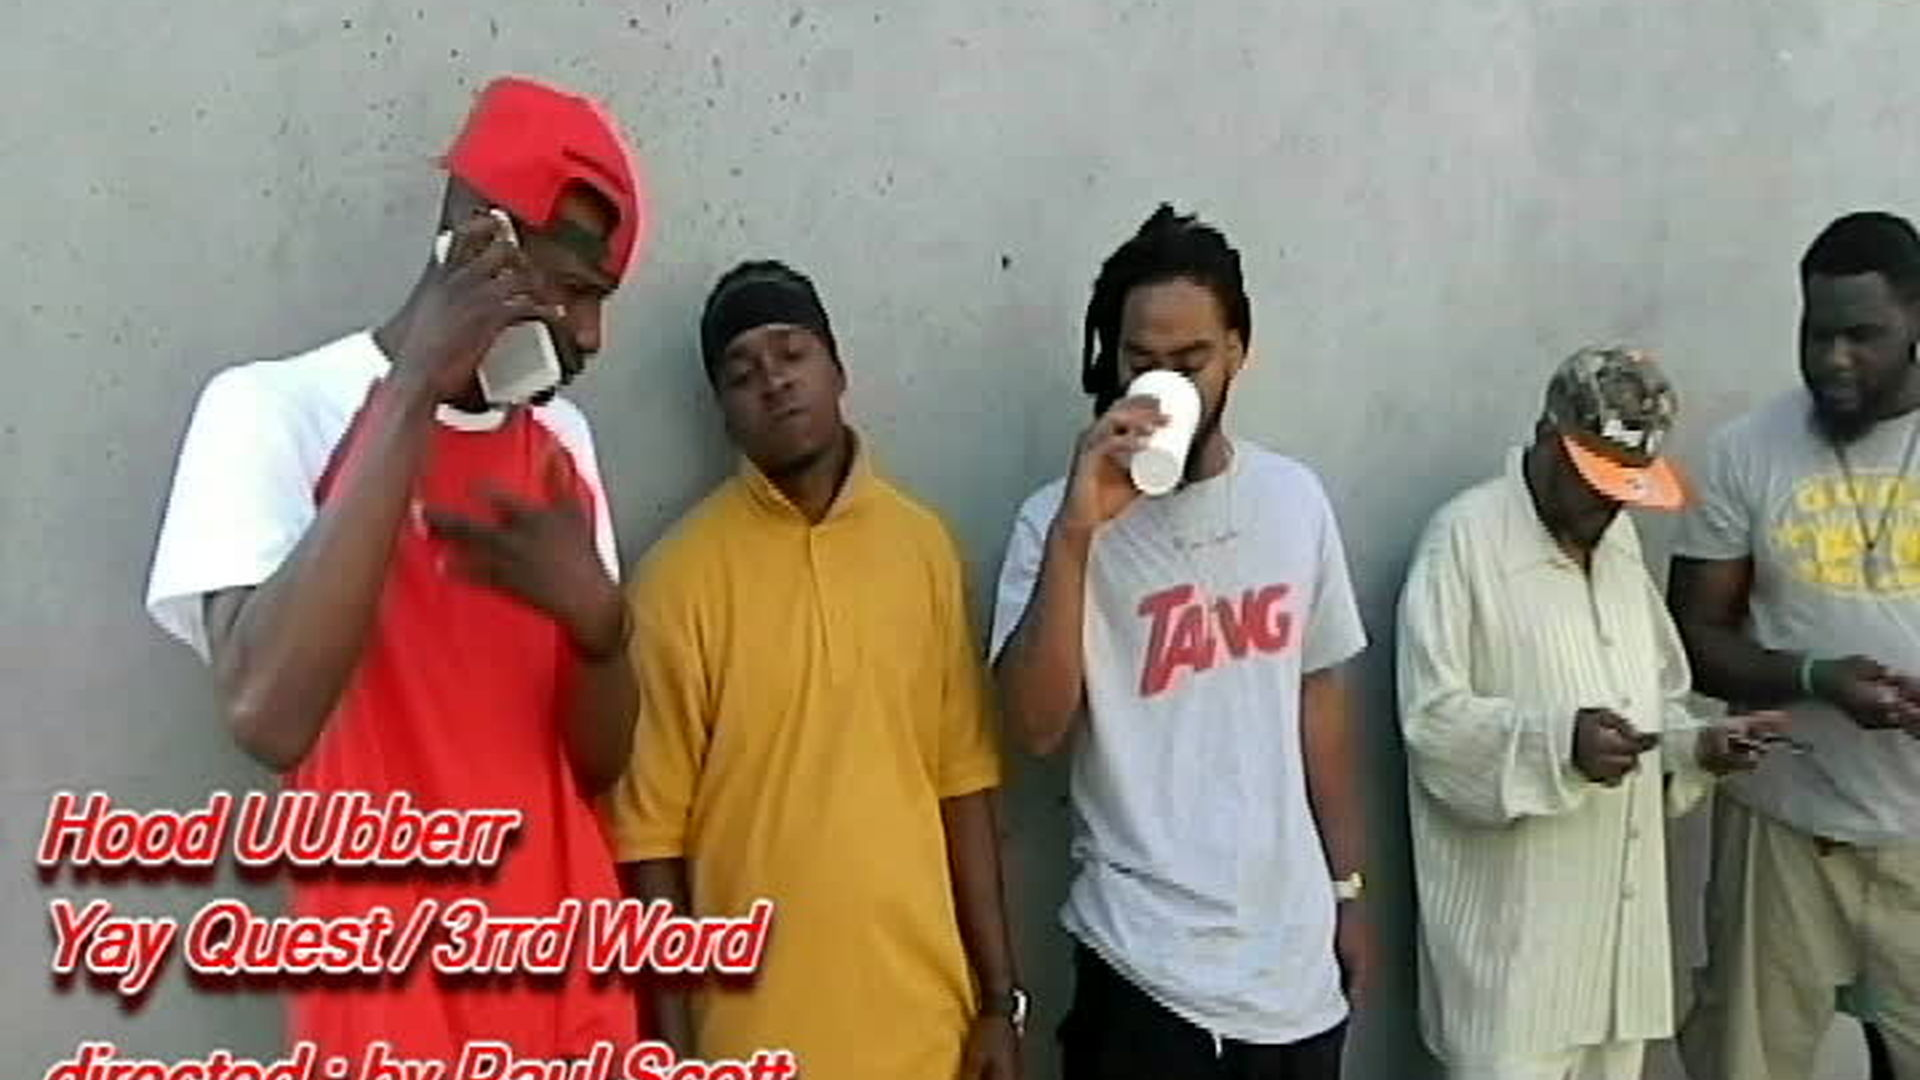 yay quest feat 3rrd world - hood uubbeerr